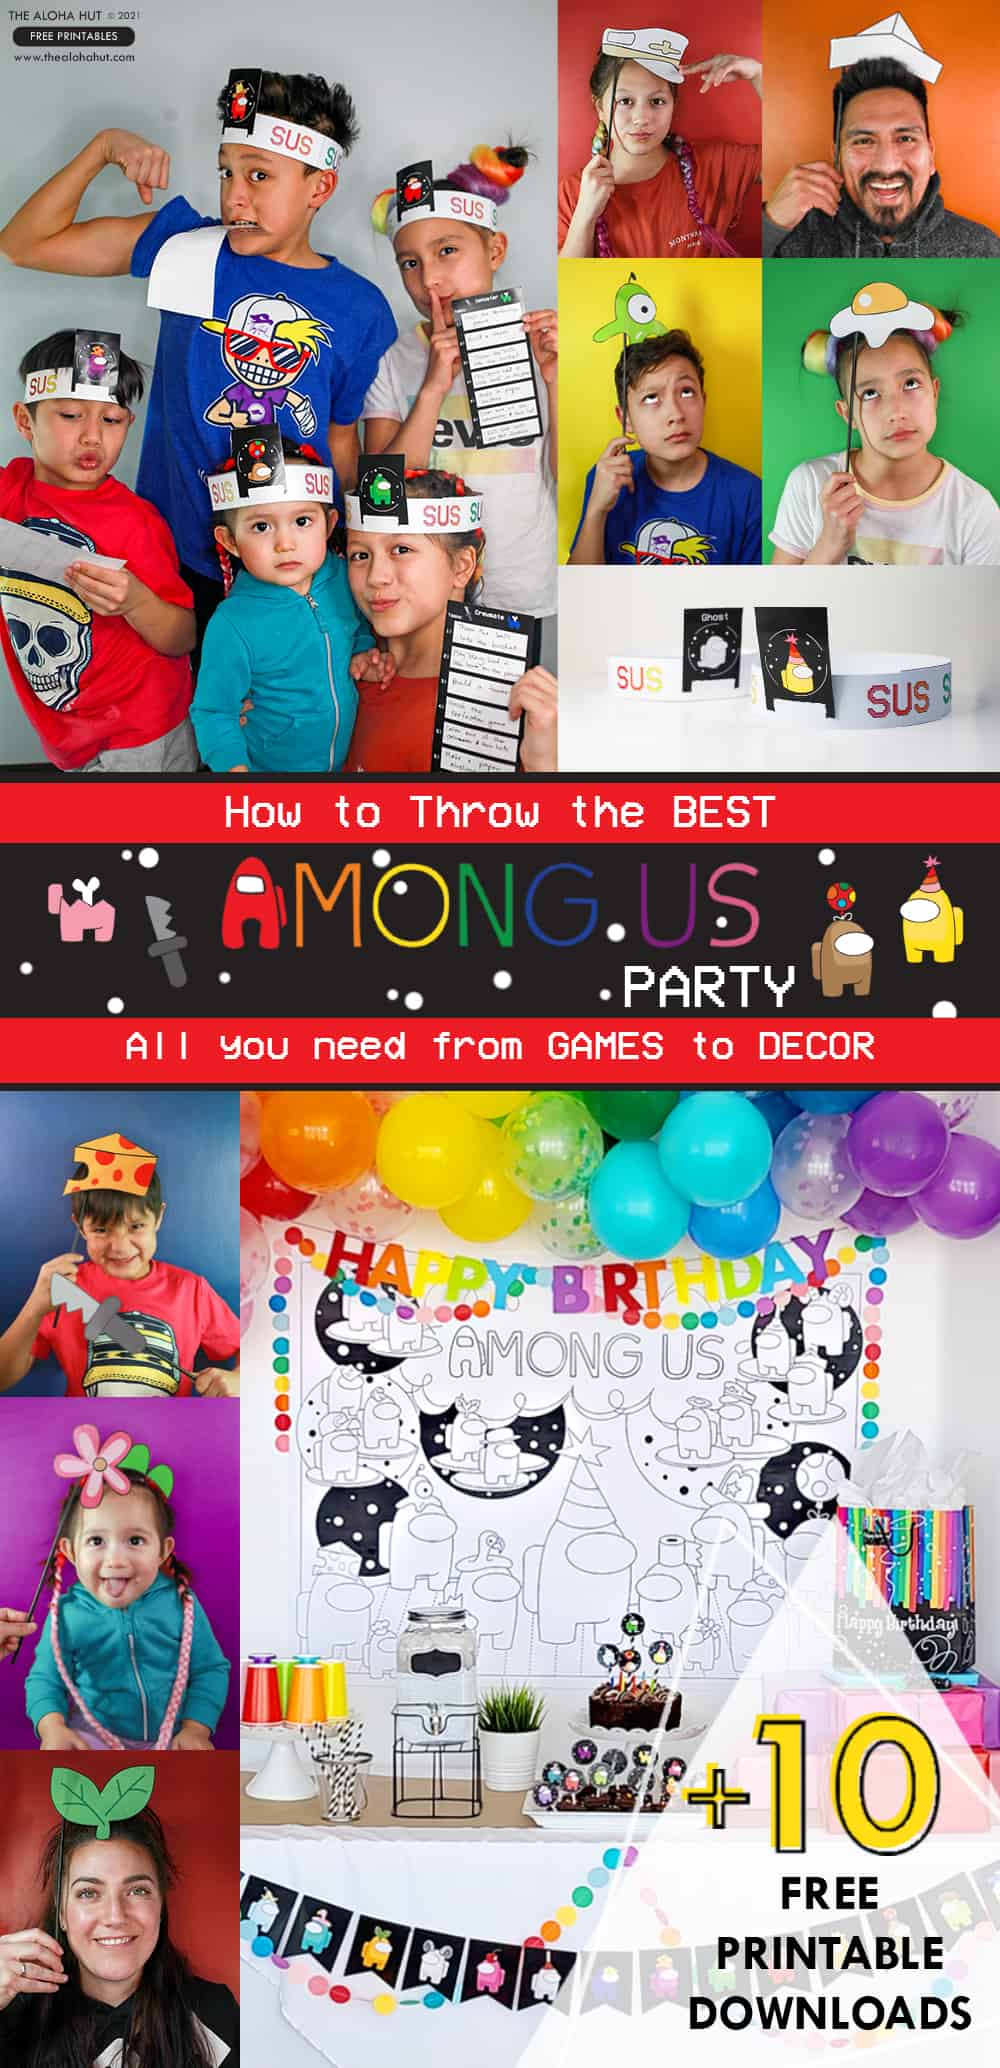 The Best Among Us Party: Games to Decor +10 Free Printables by the Aloha Hut